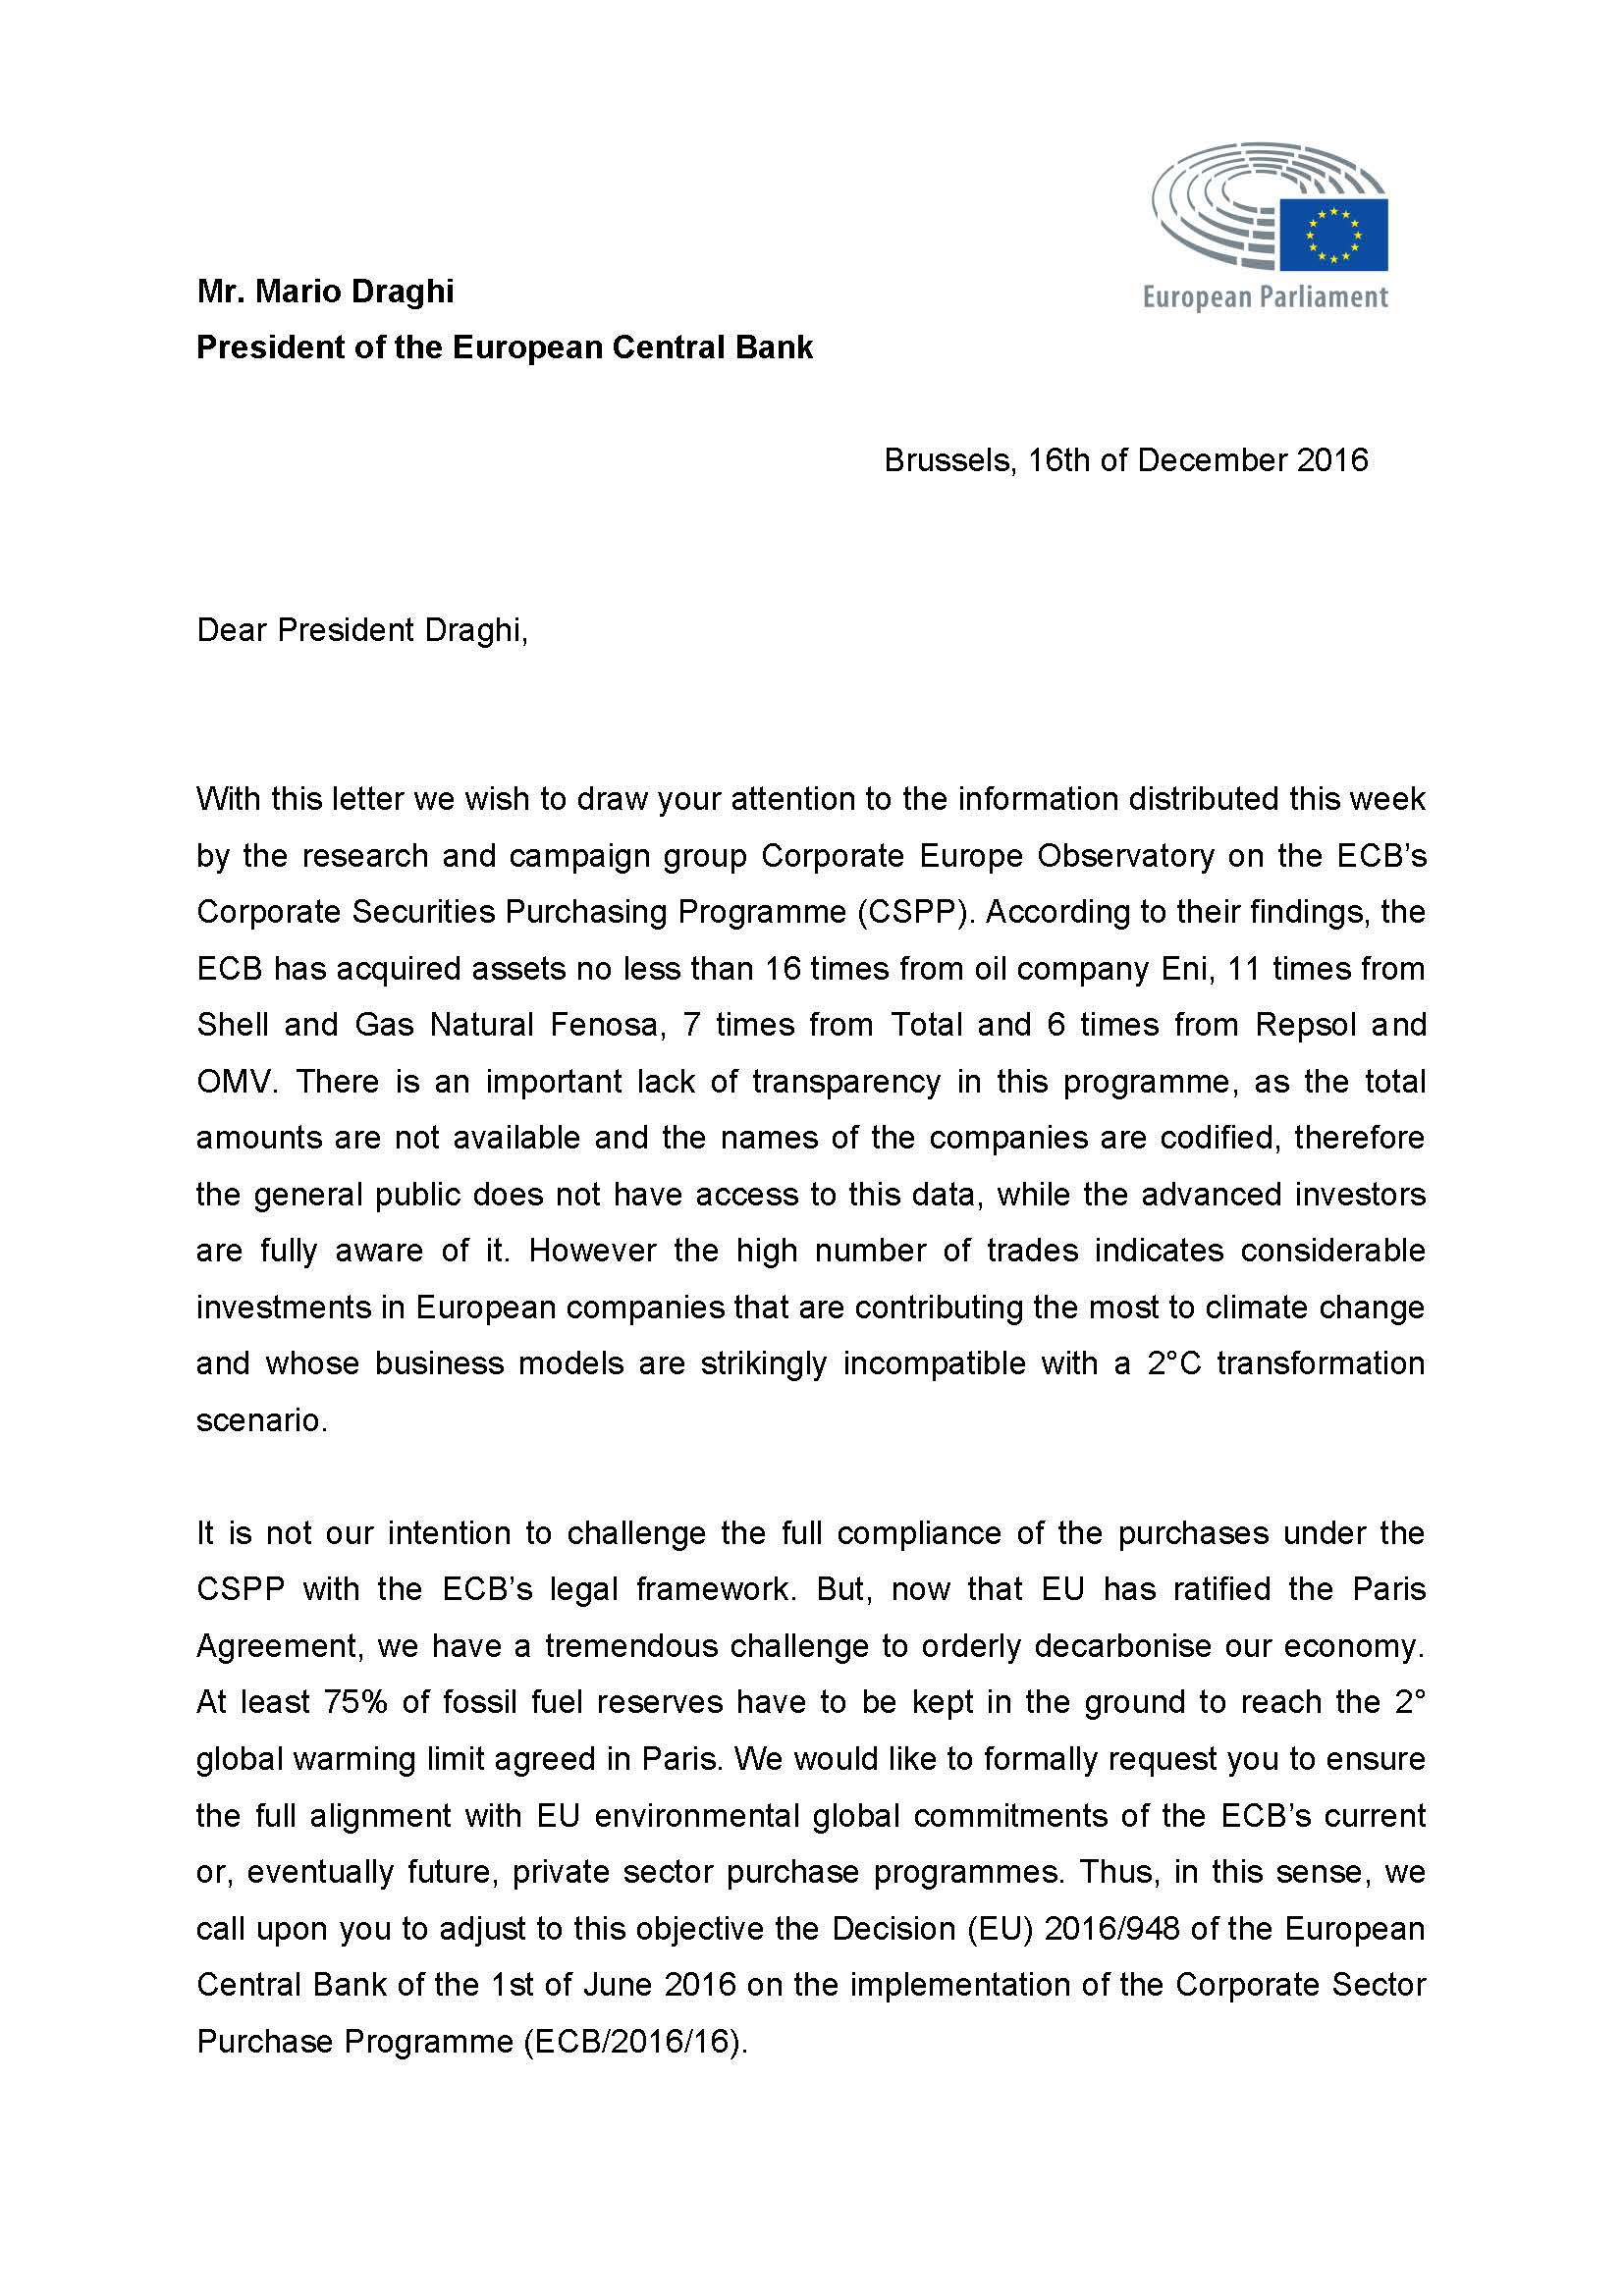 letter-to-mr-draghi-cspp-1_seite_1